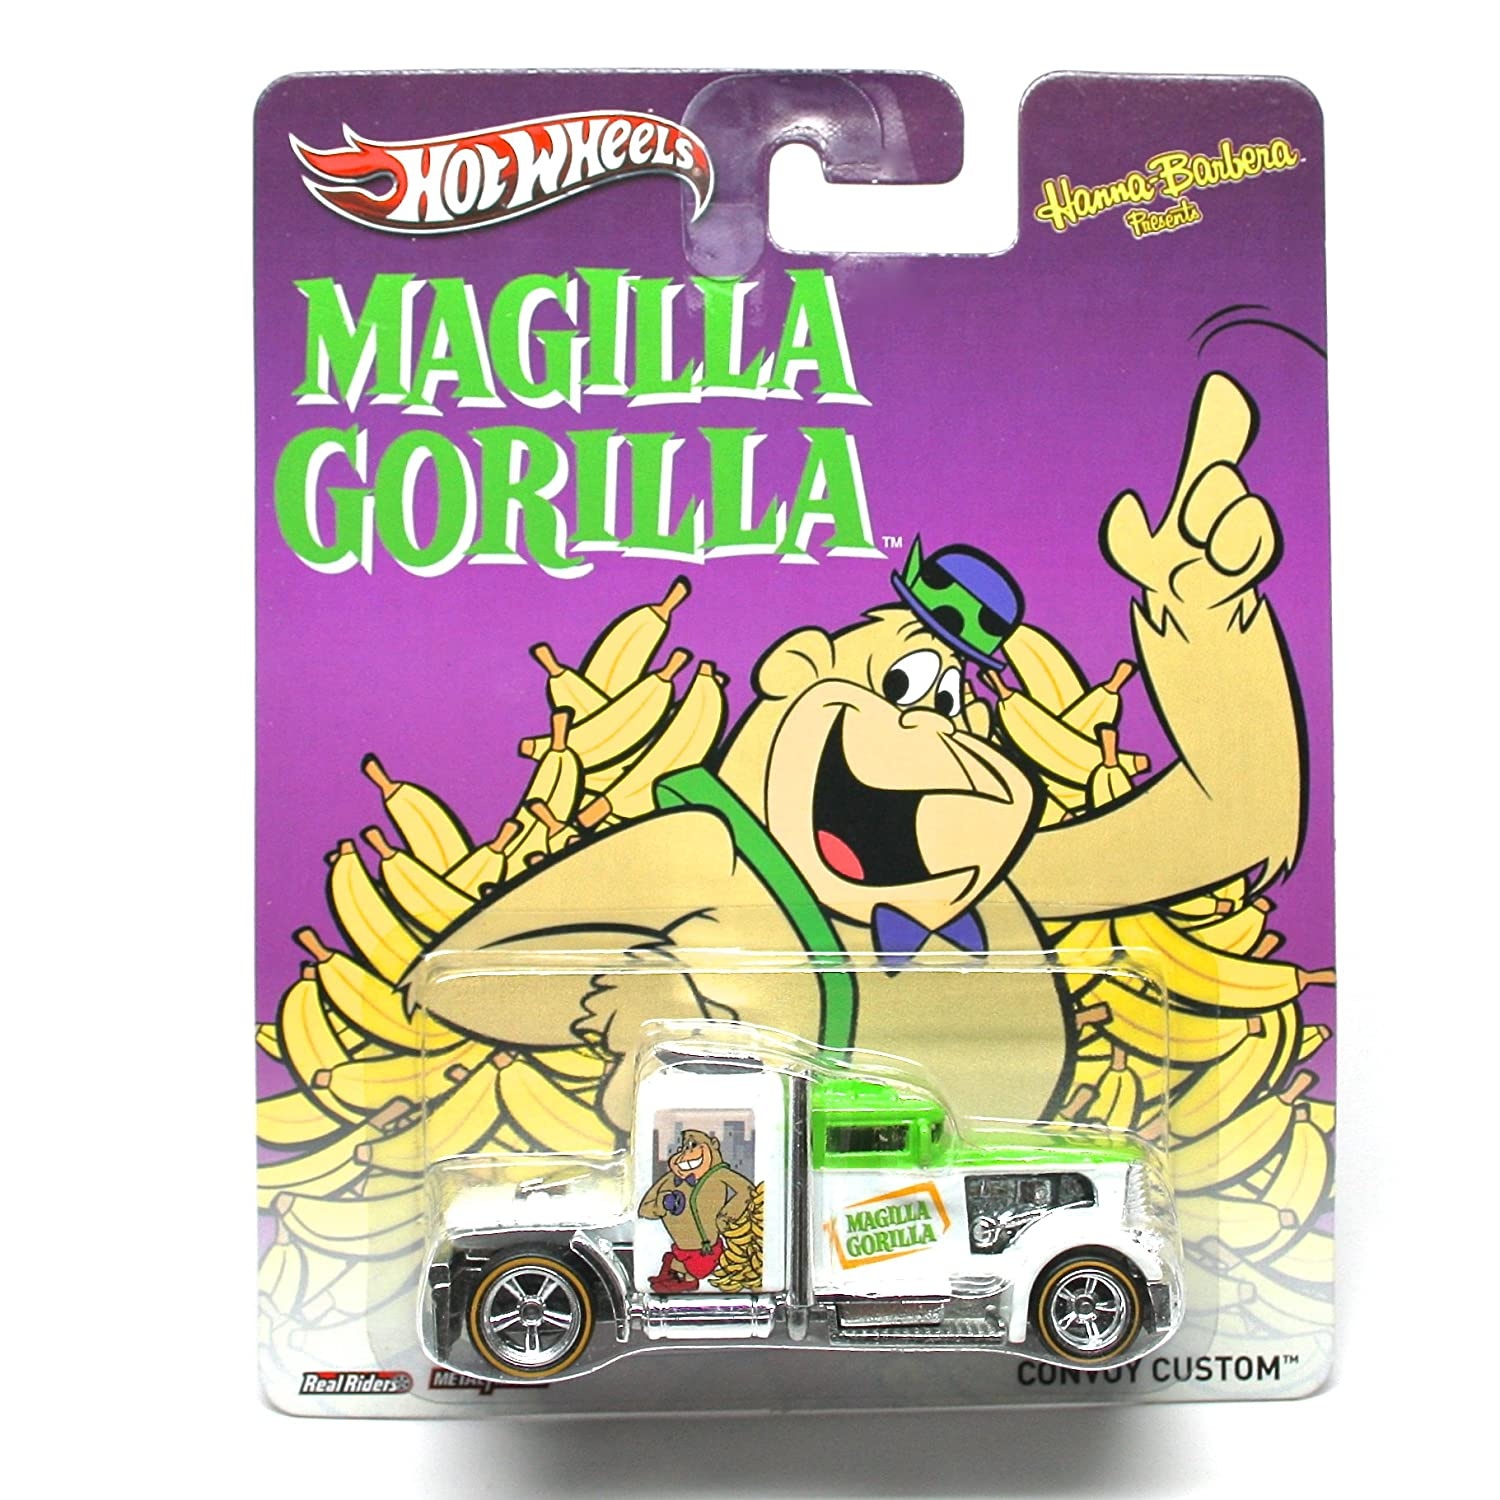 CONVOY CUSTOM  MAGILLA GORILLA/ HANNA-BARBERA  Hot Wheels 2013 Pop Culture Series 1:64 Scale Die-Cast Vehicle by Hot Wheels